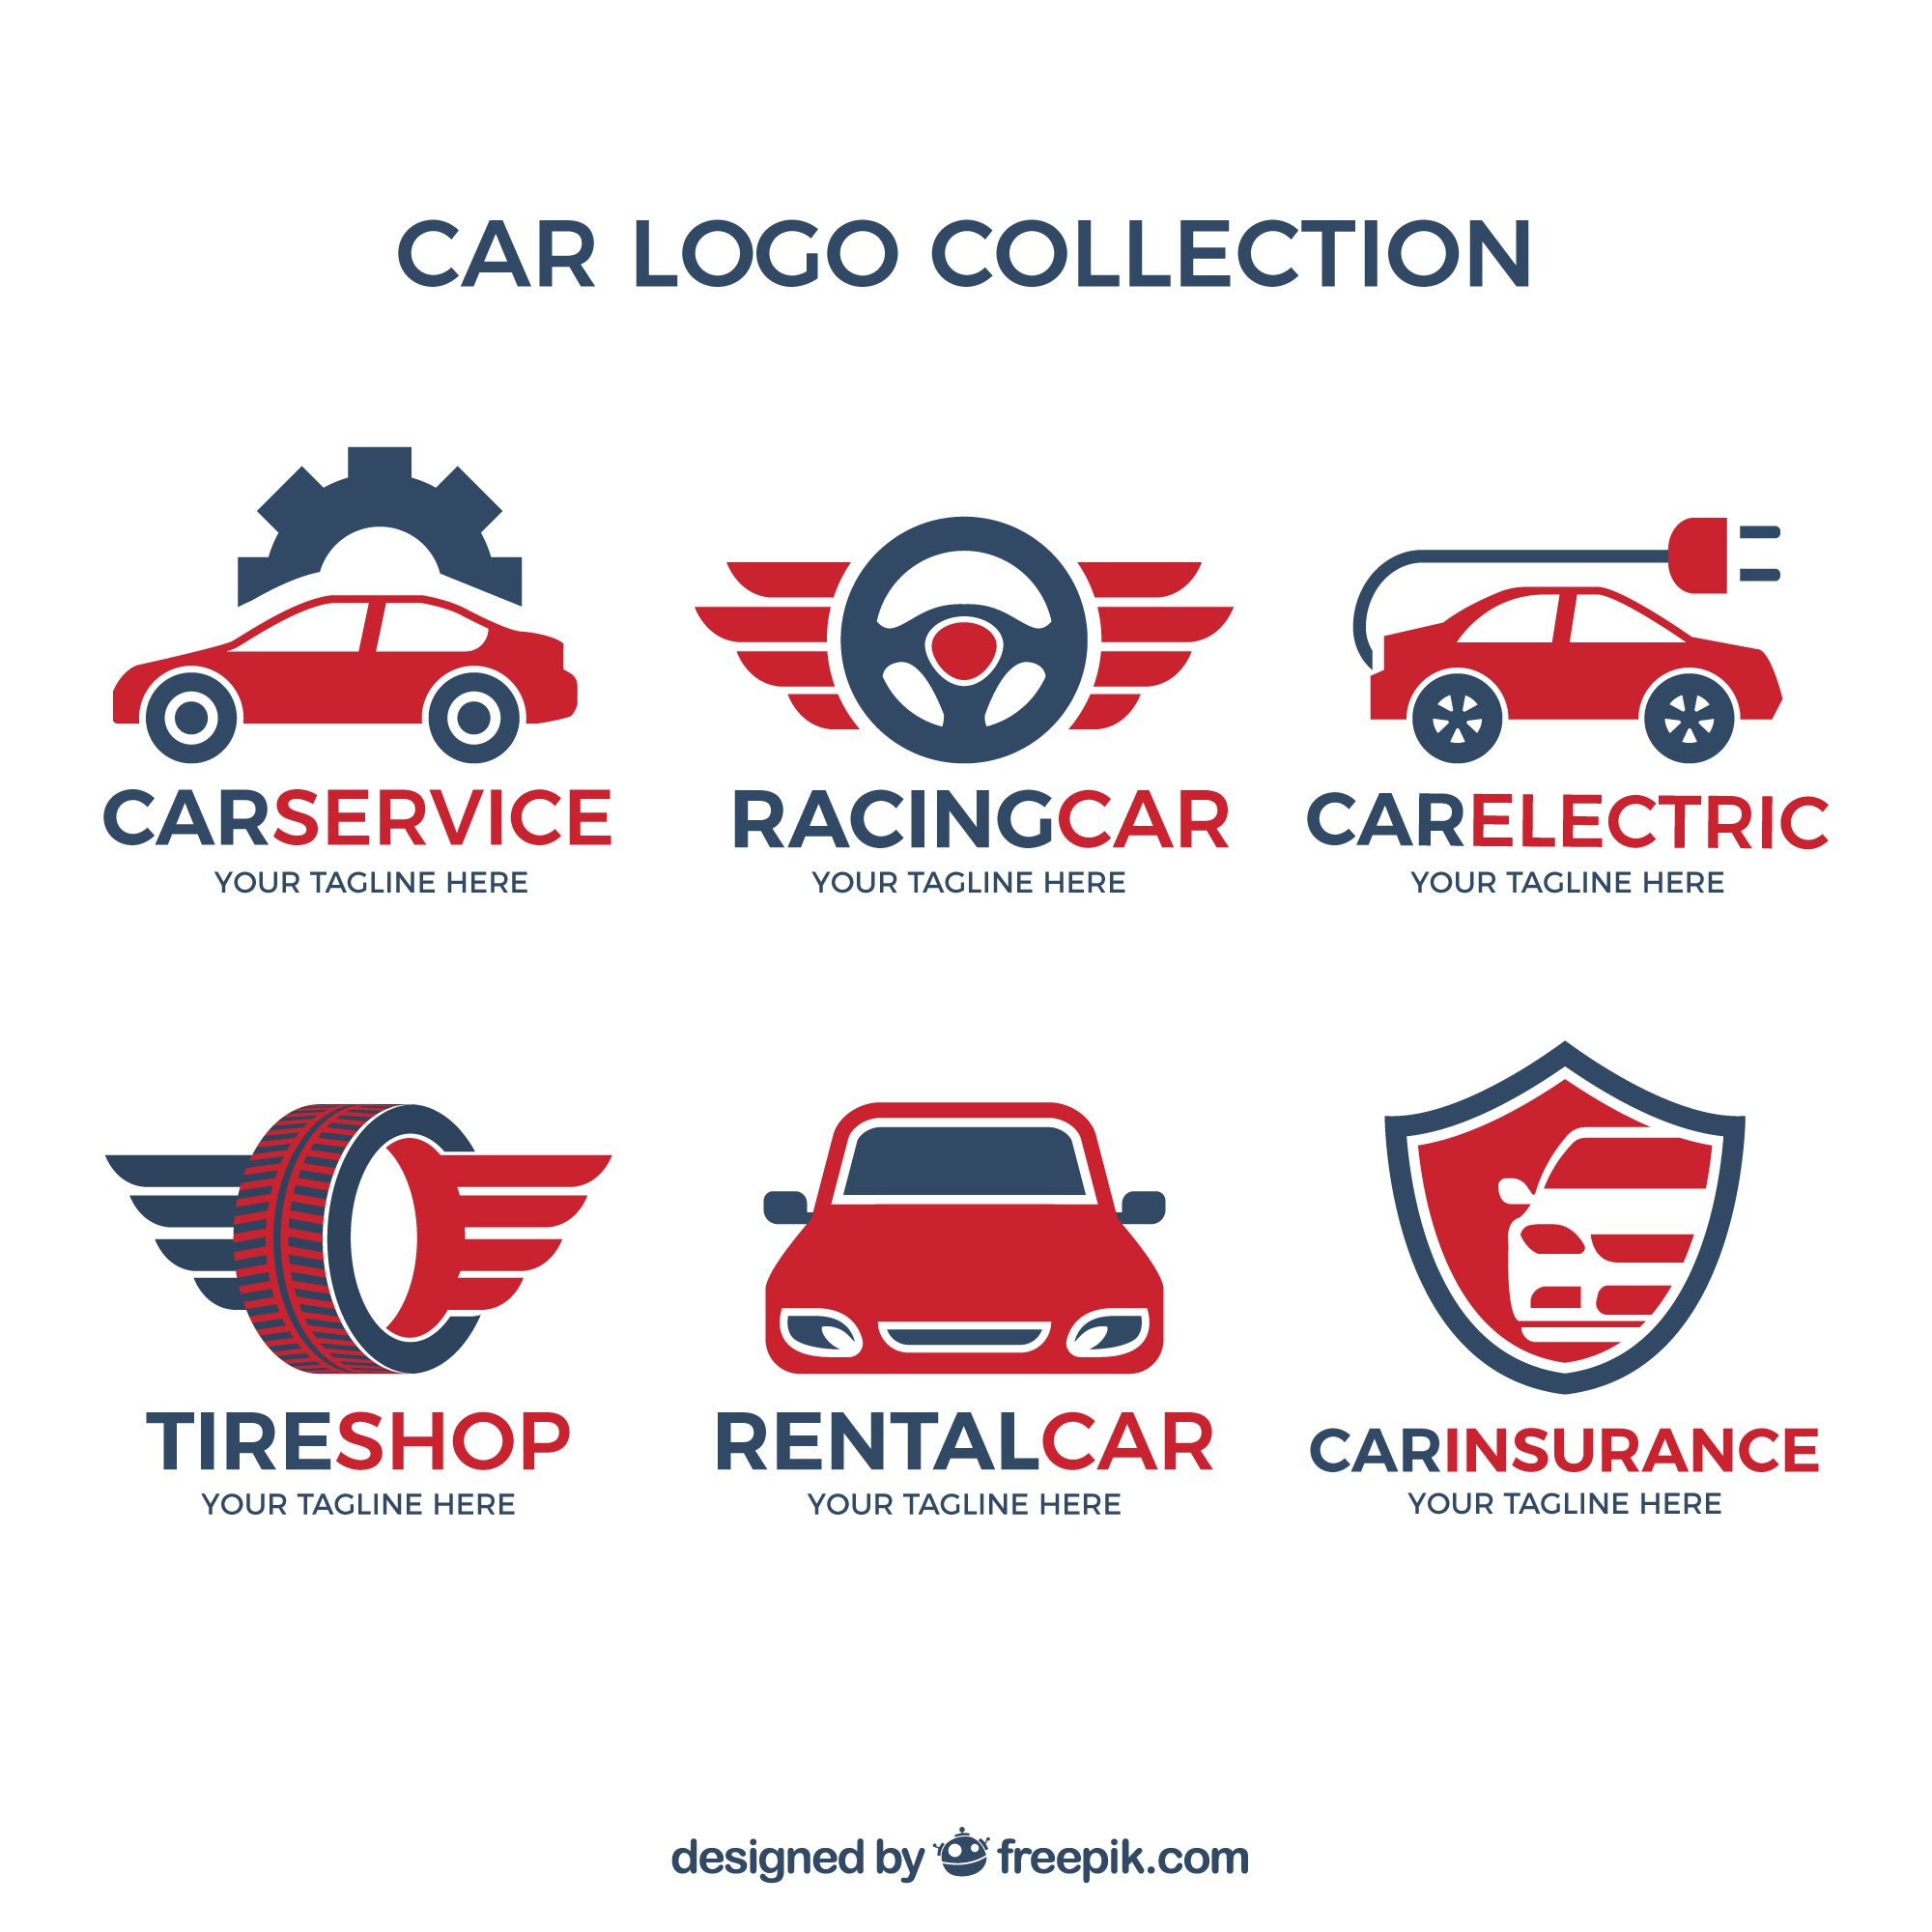 Variety of car logos with red details